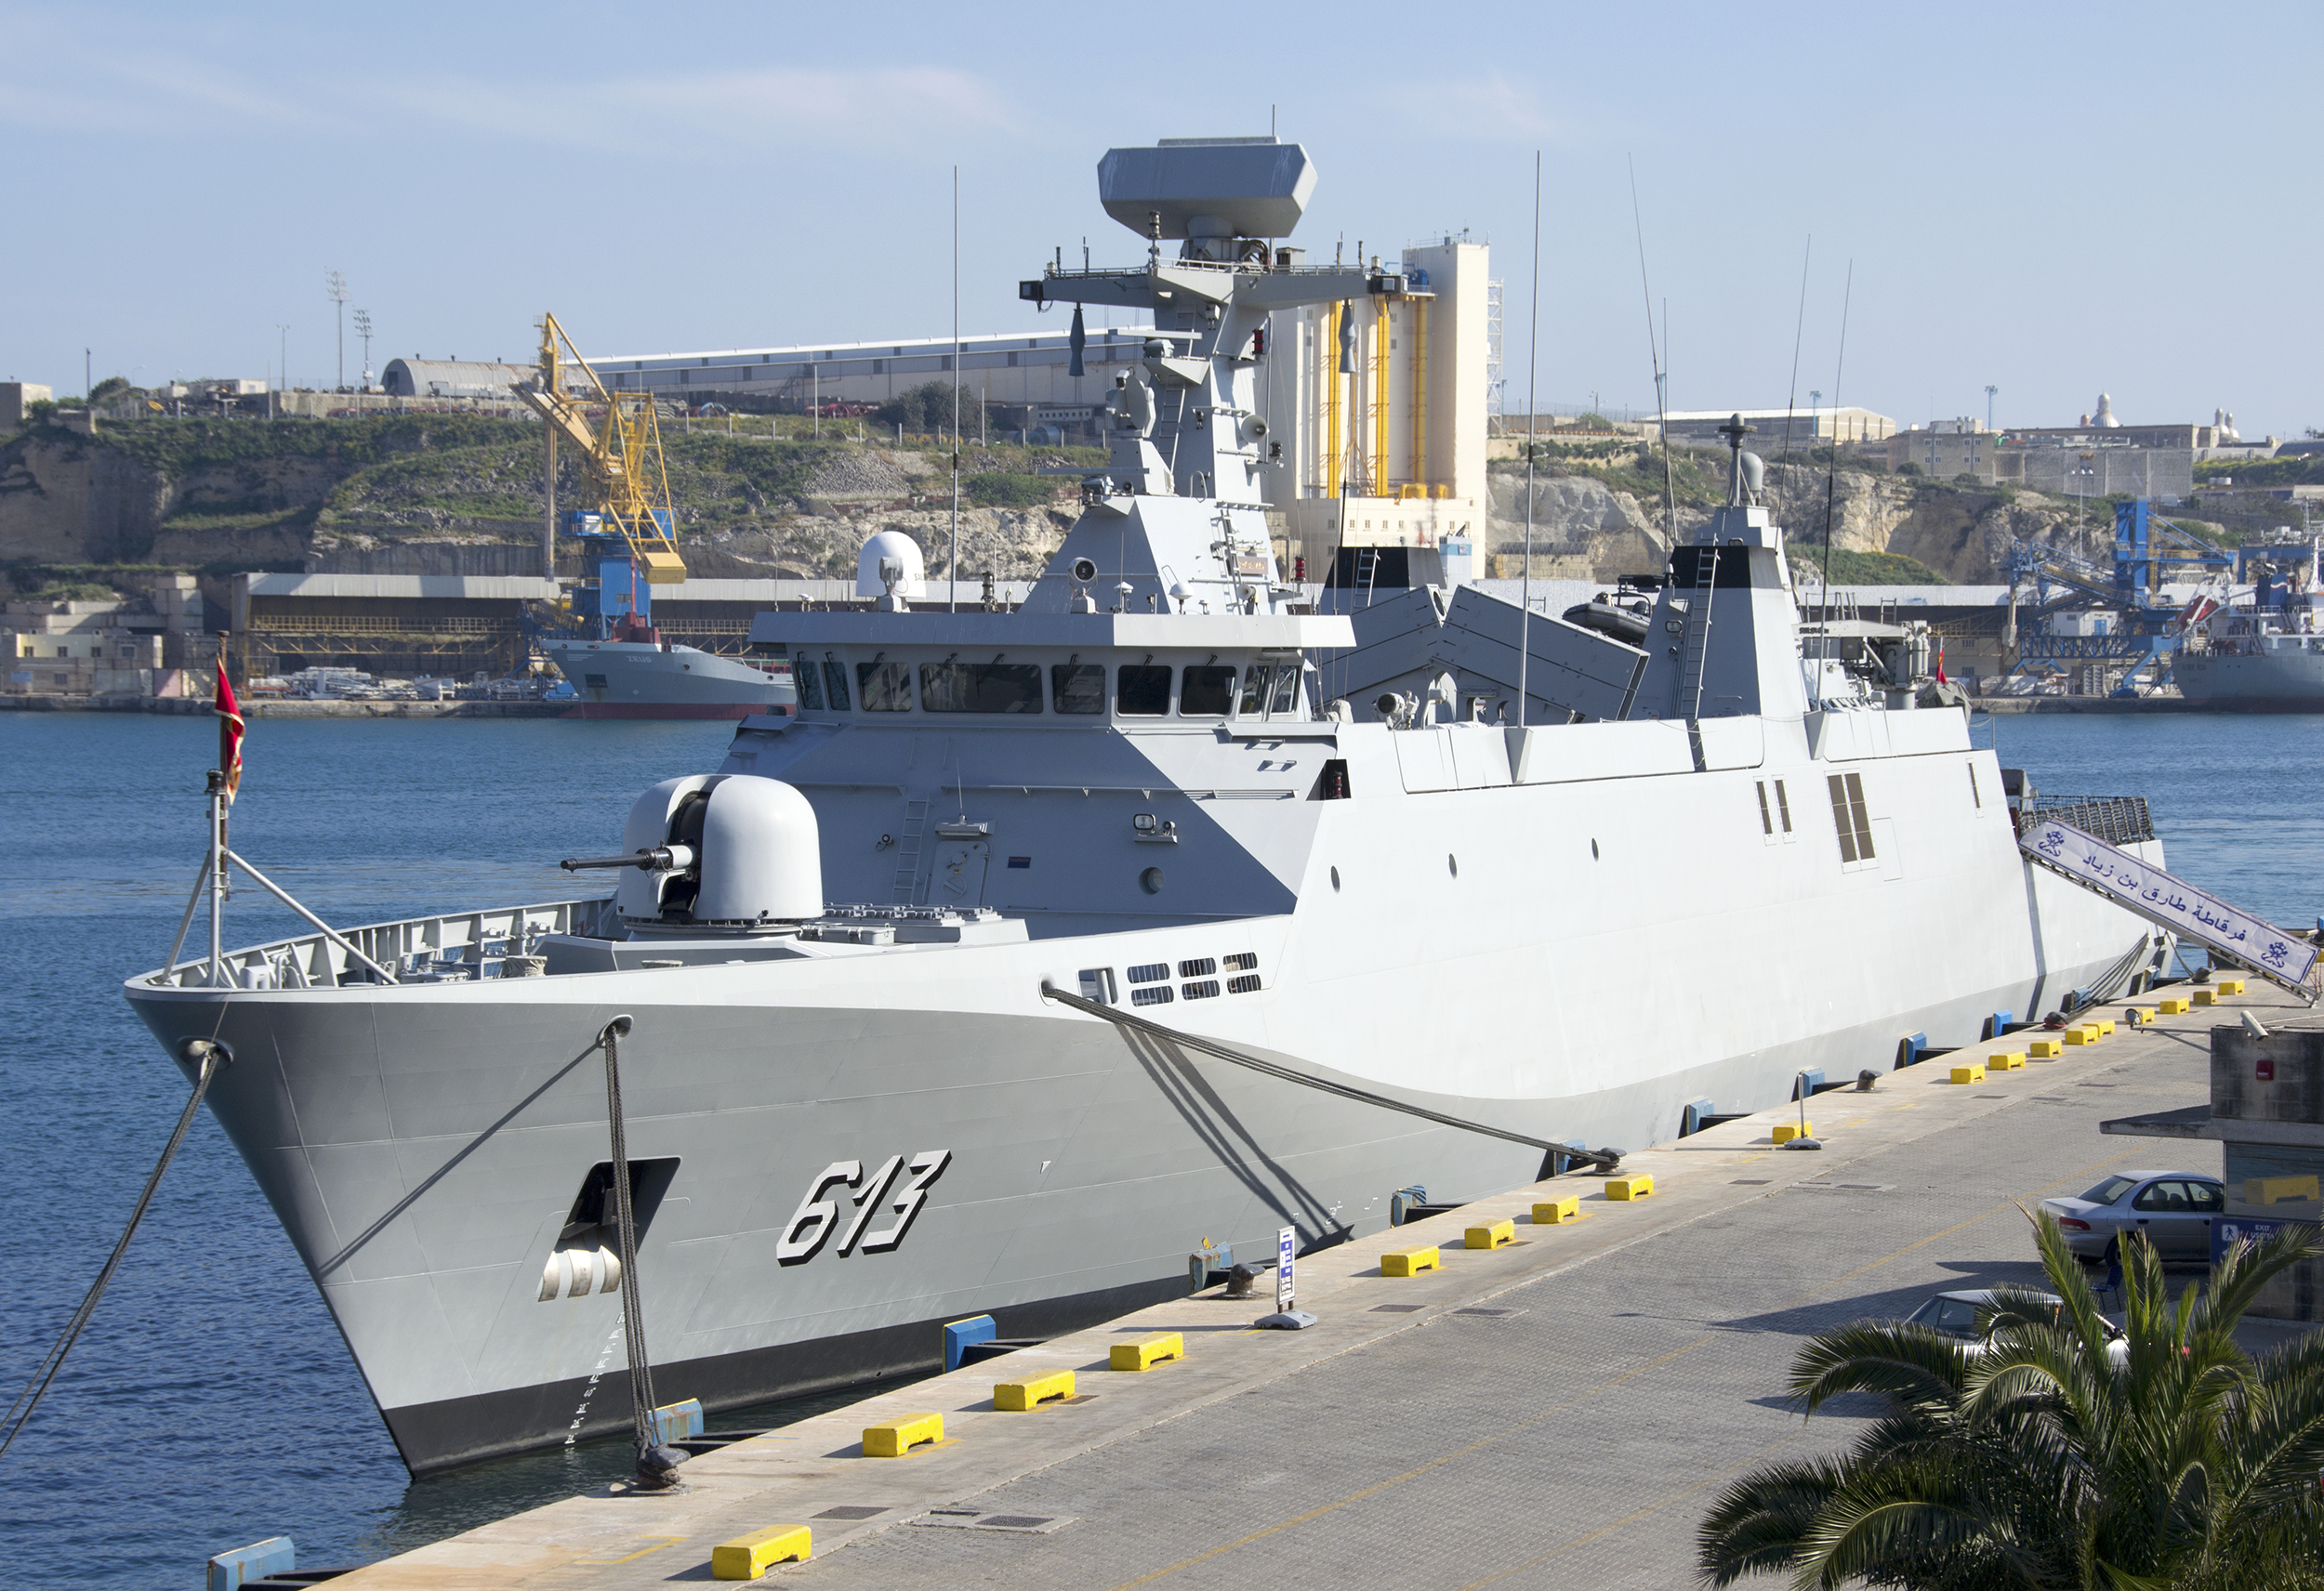 Royal Moroccan Navy Sigma class frigates / Frégates marocaines multimissions Sigma - Page 20 118711171990538663774f10c78o